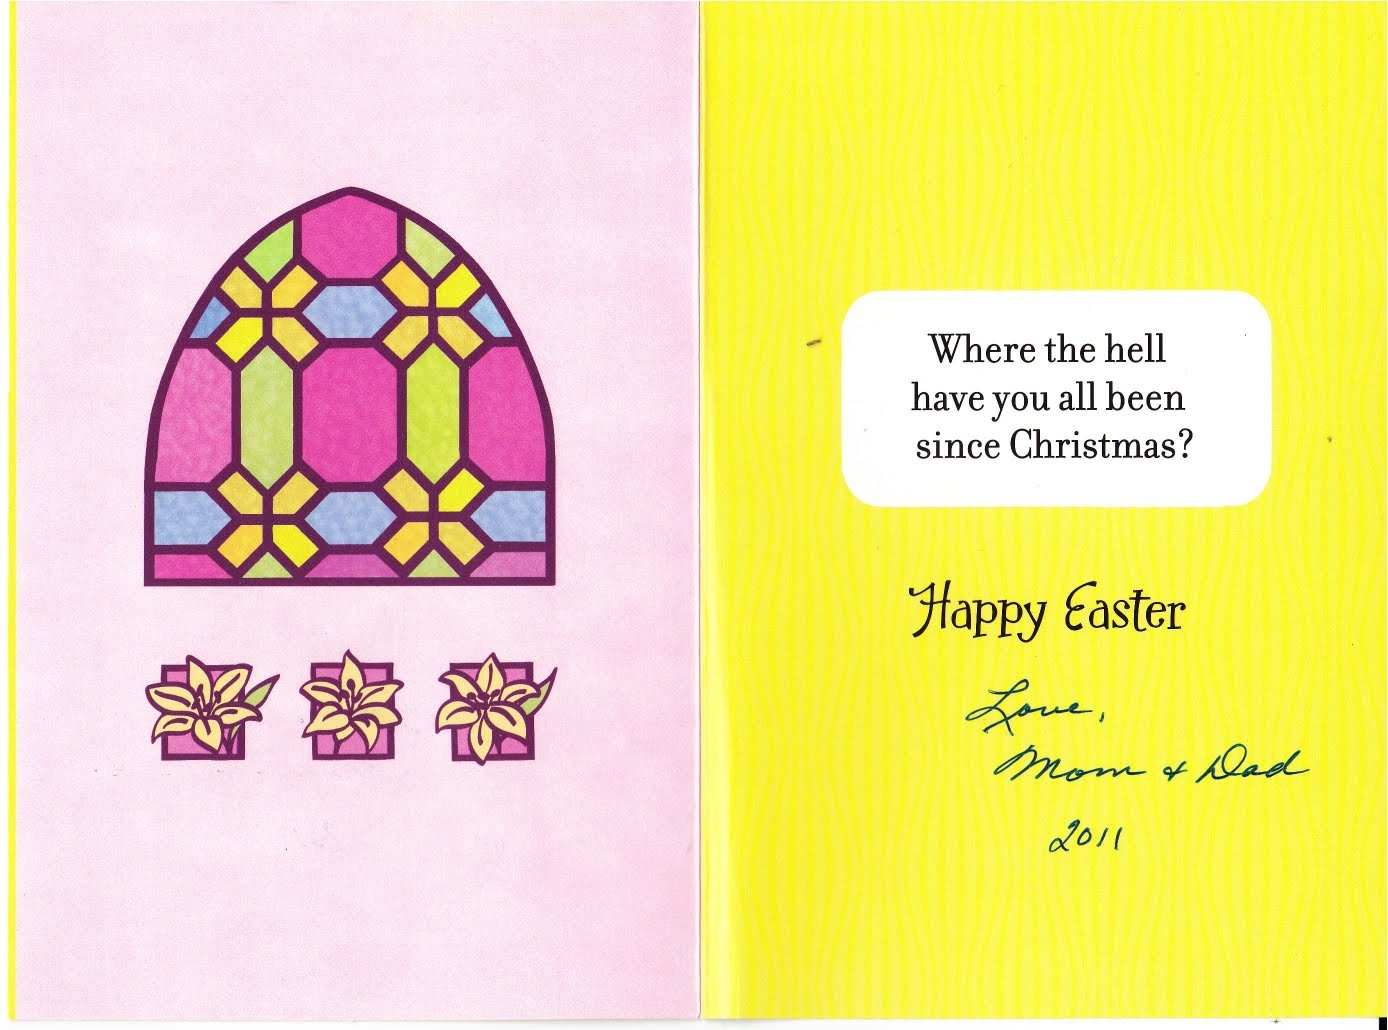 My Life Scanned Easter Card from Mom and Dad 2011